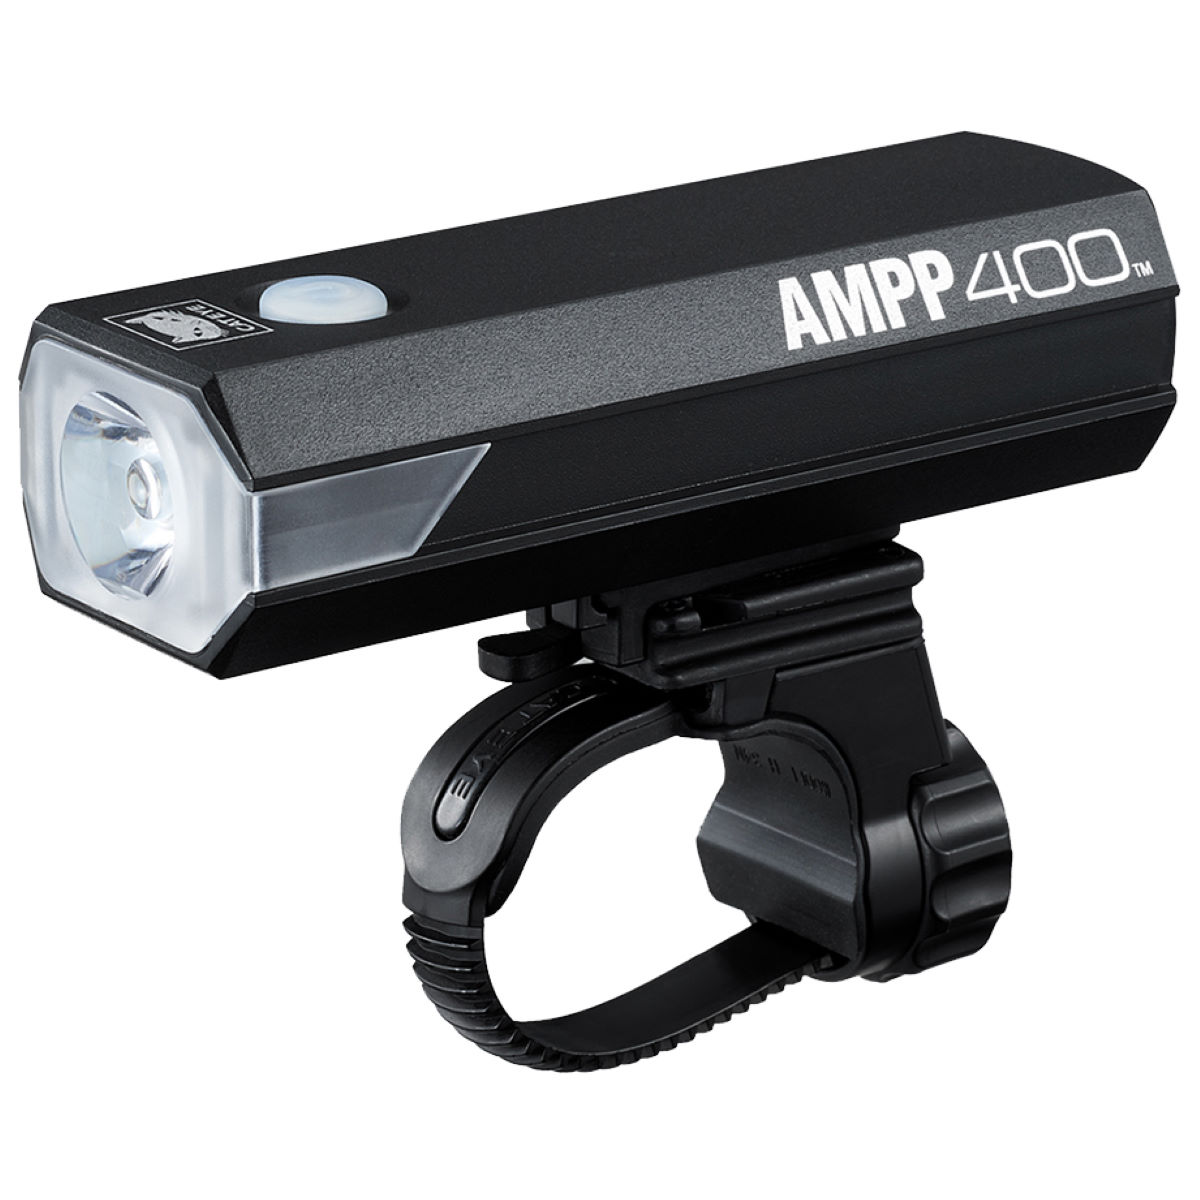 Cateye Cateye Ampp 400 Front Light   Front Lights